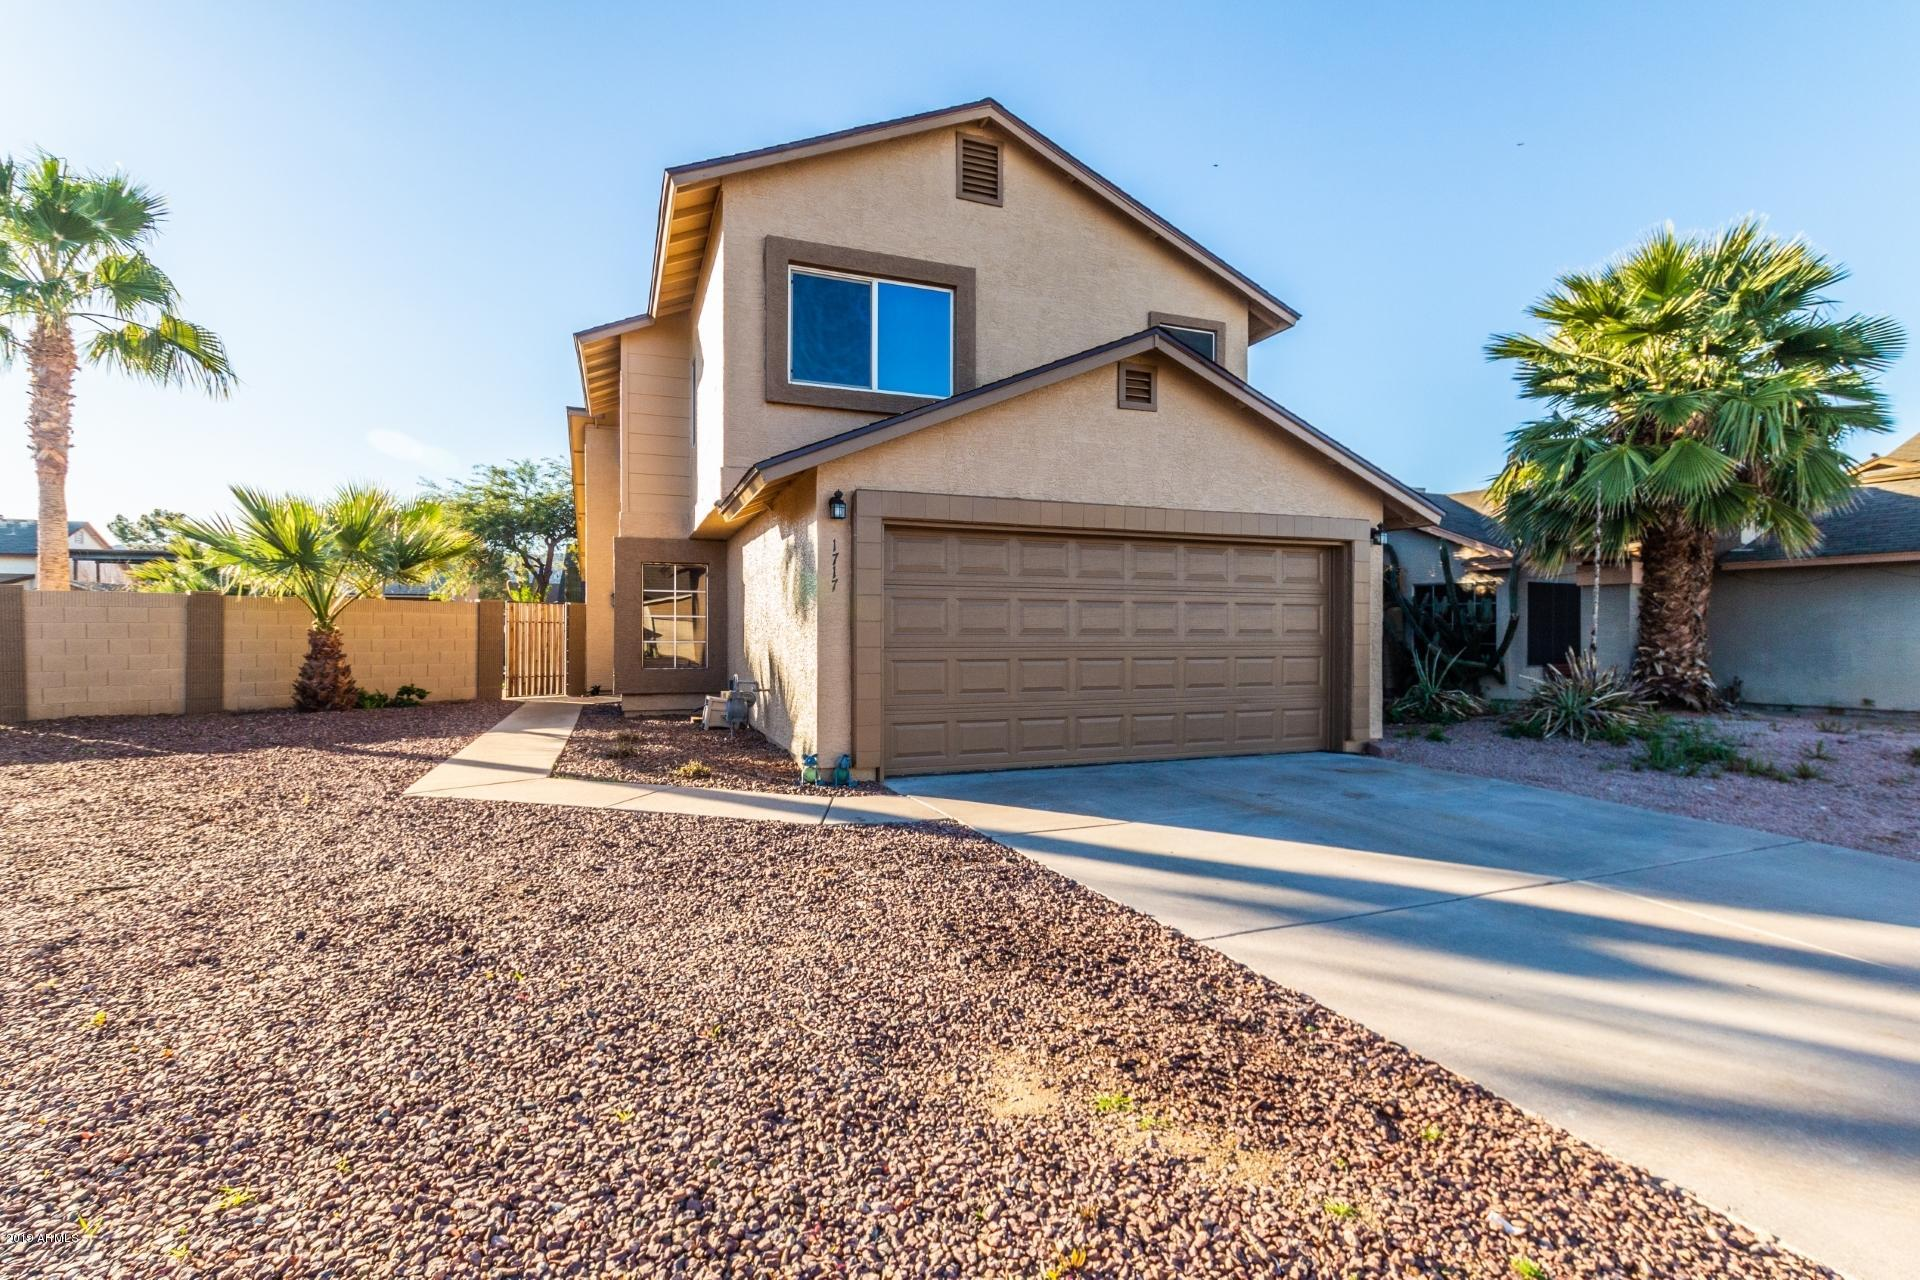 Photo for 1717 E Greenway Circle, Phoenix, AZ 85042 (MLS # 5880399)